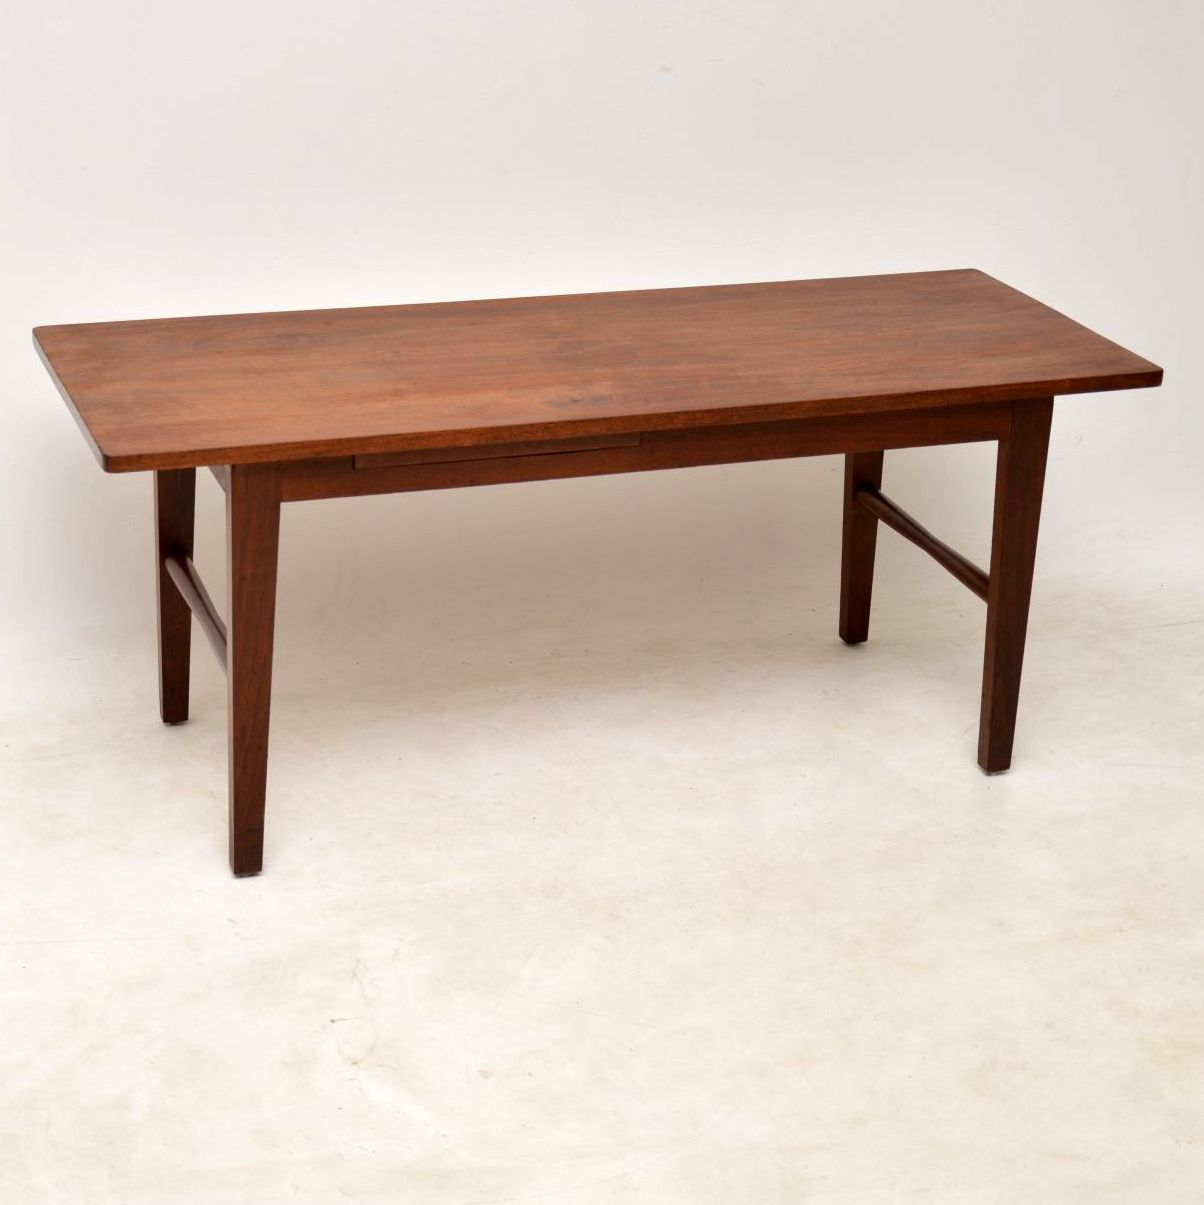 Vintage Teak Coffee Tables: 1960's Vintage Teak Coffee Table